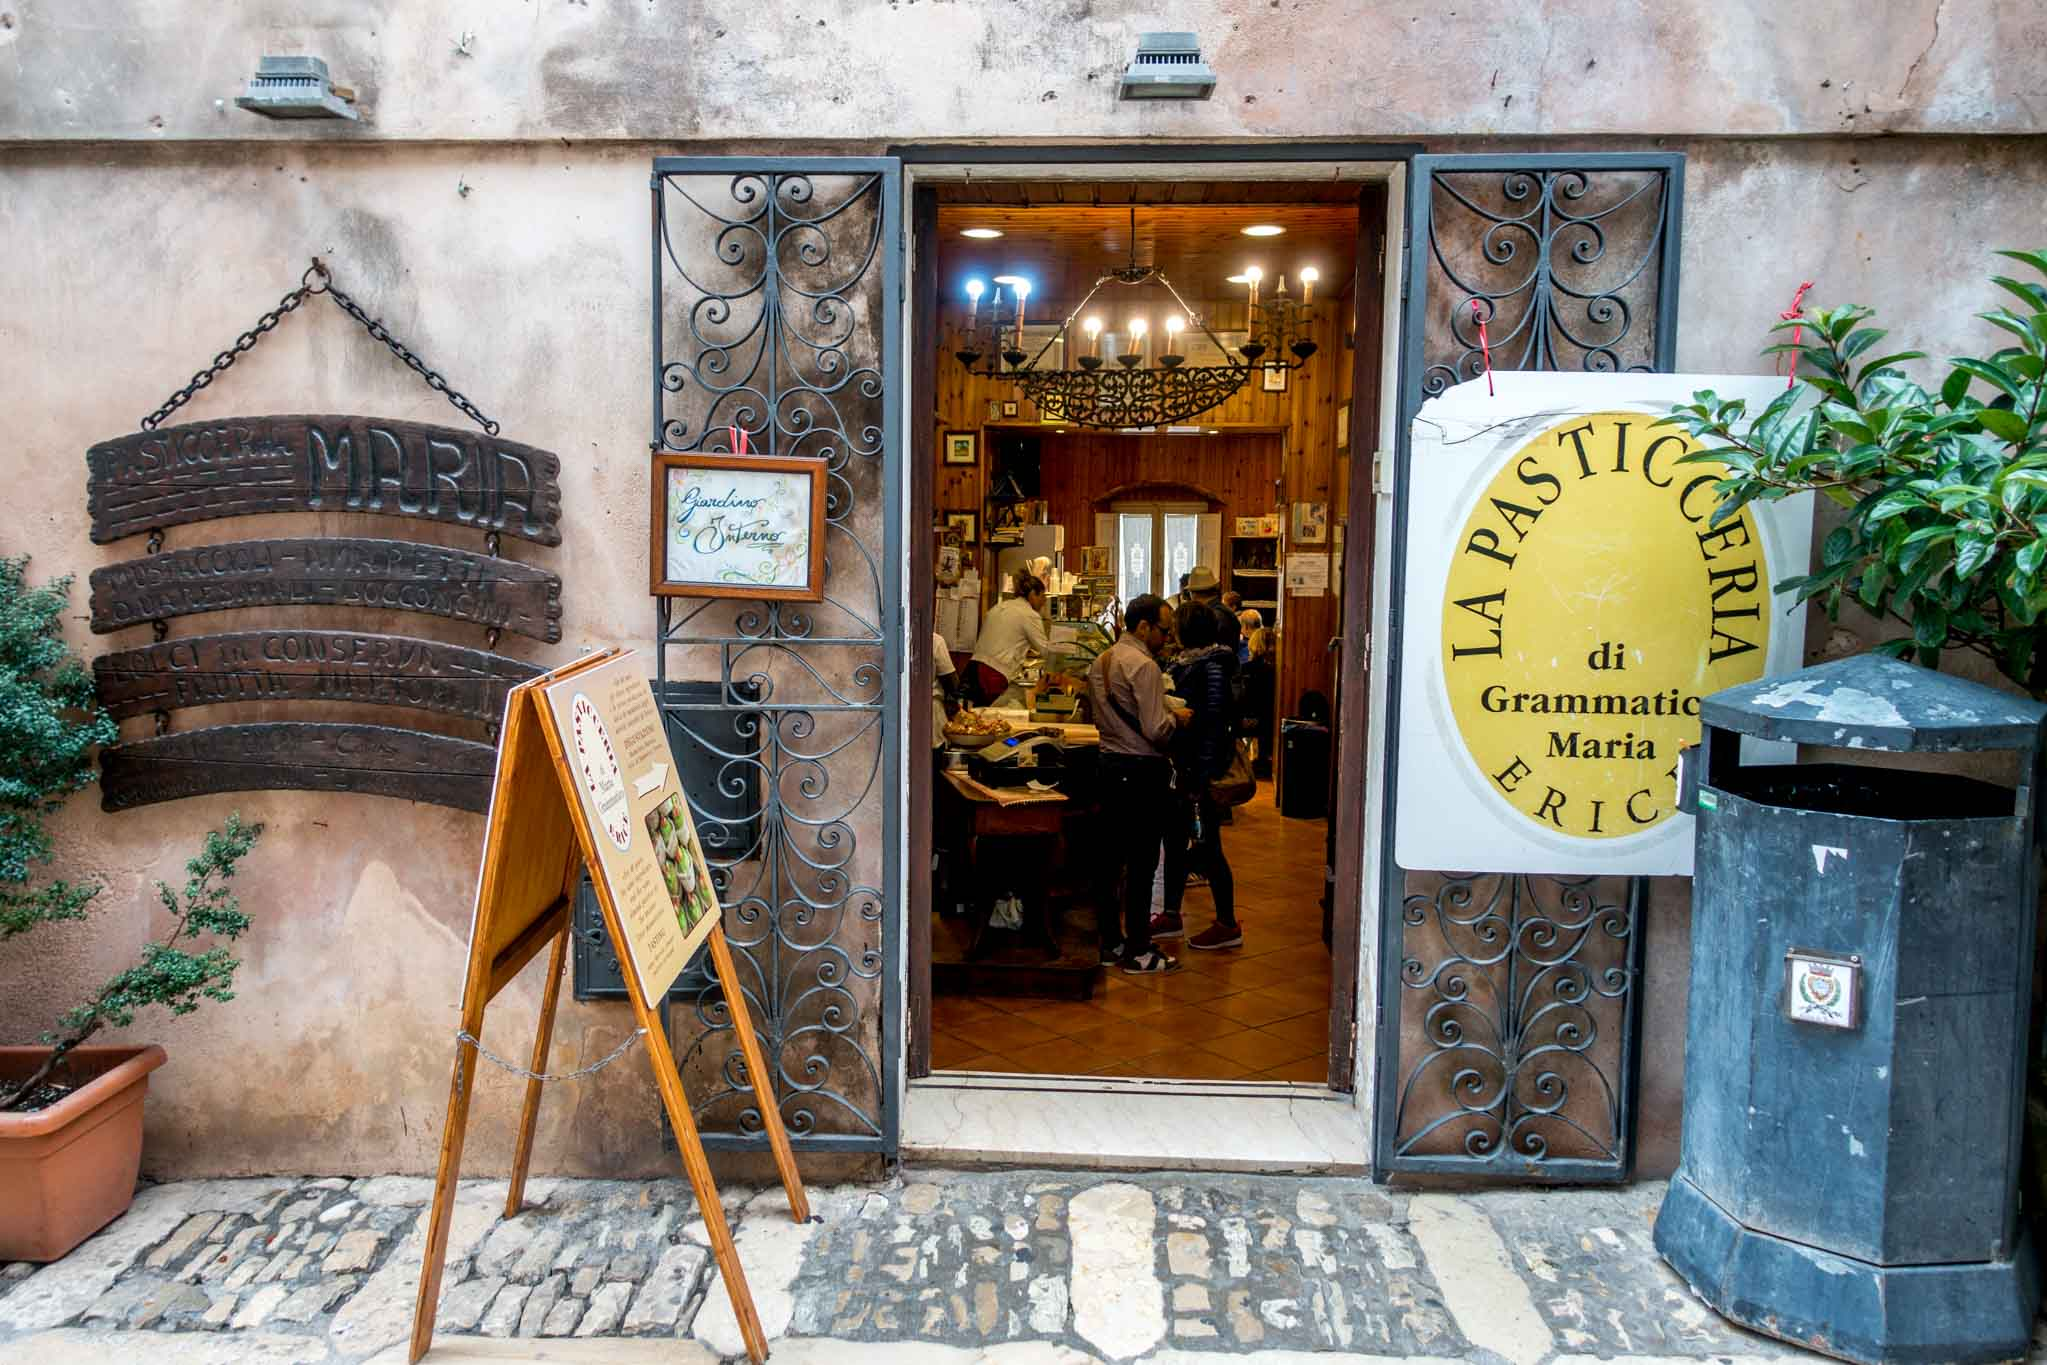 Exterior of pastry shop in Erice